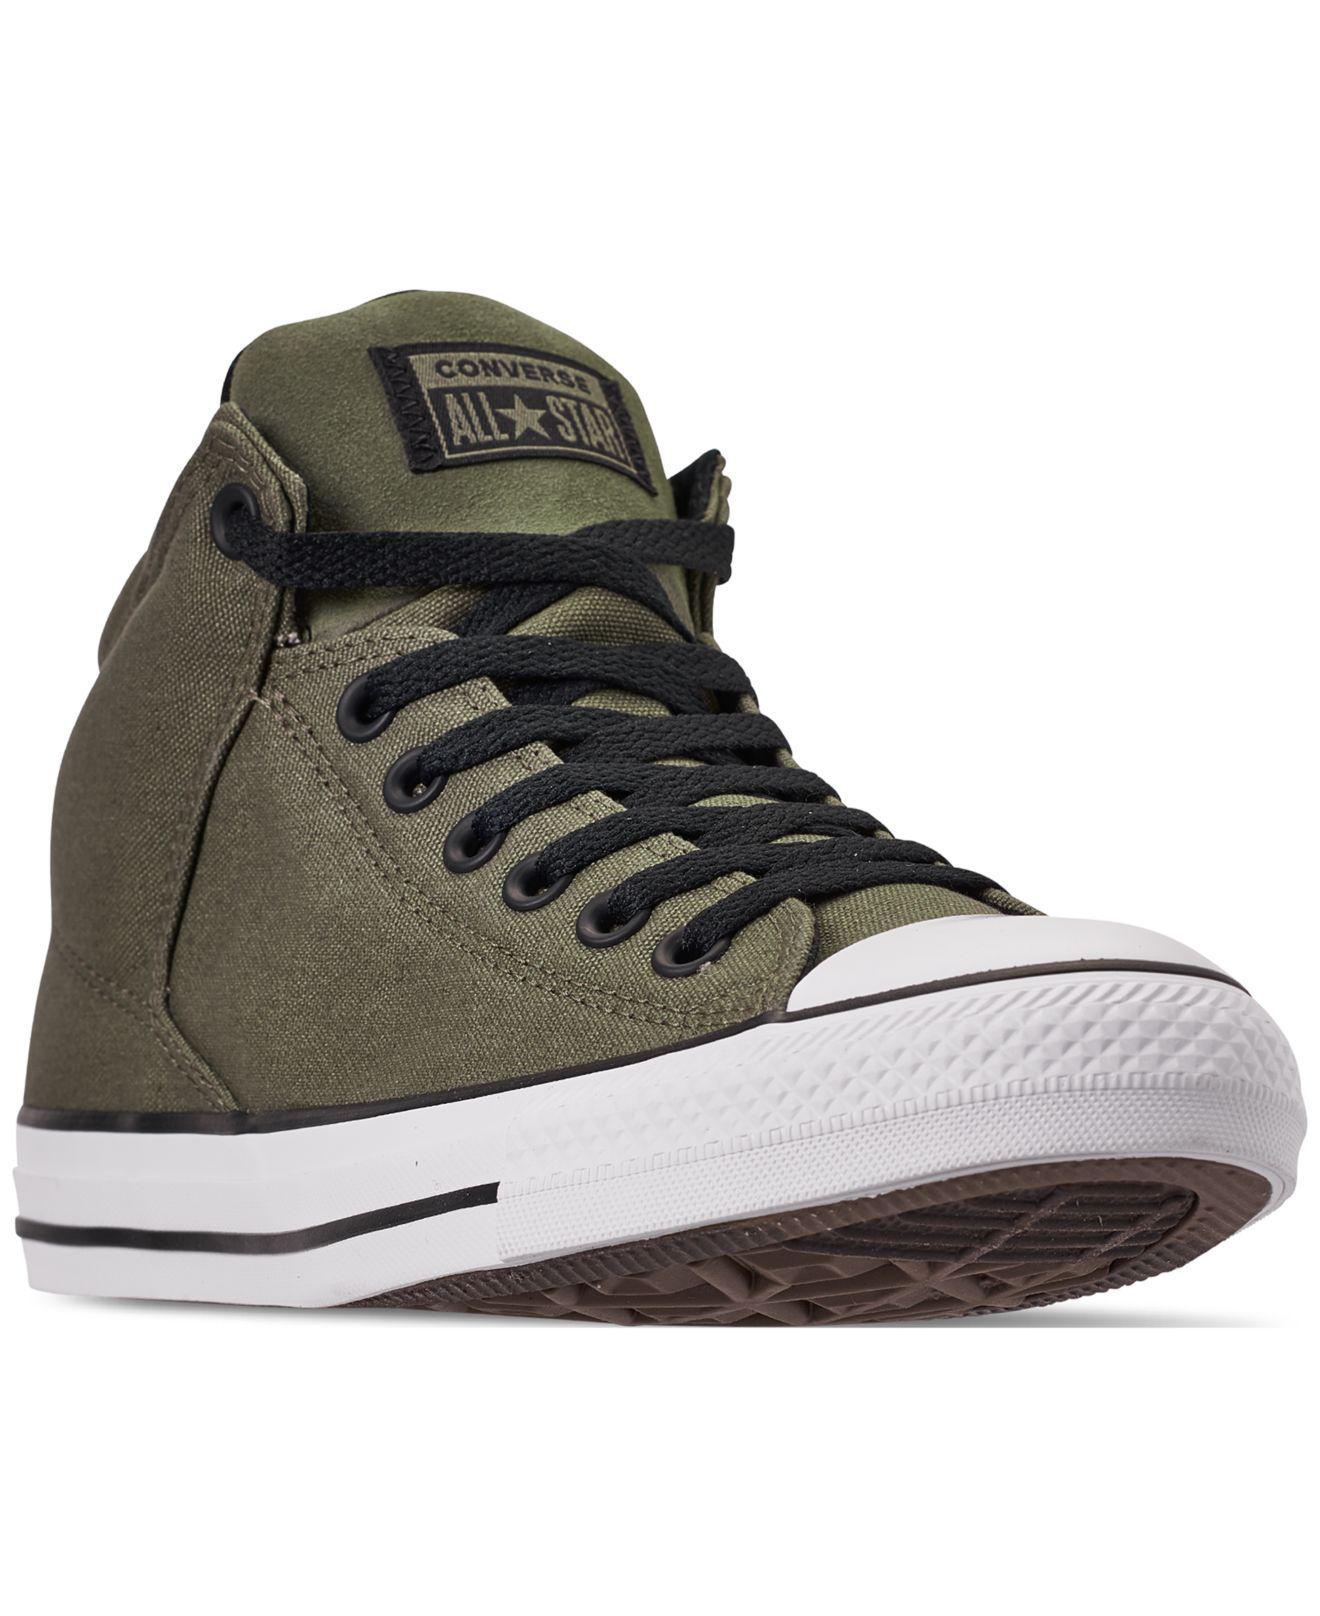 17b29f957a Lyst - Converse Chuck Taylor All Star High Street High Top Uniform ...